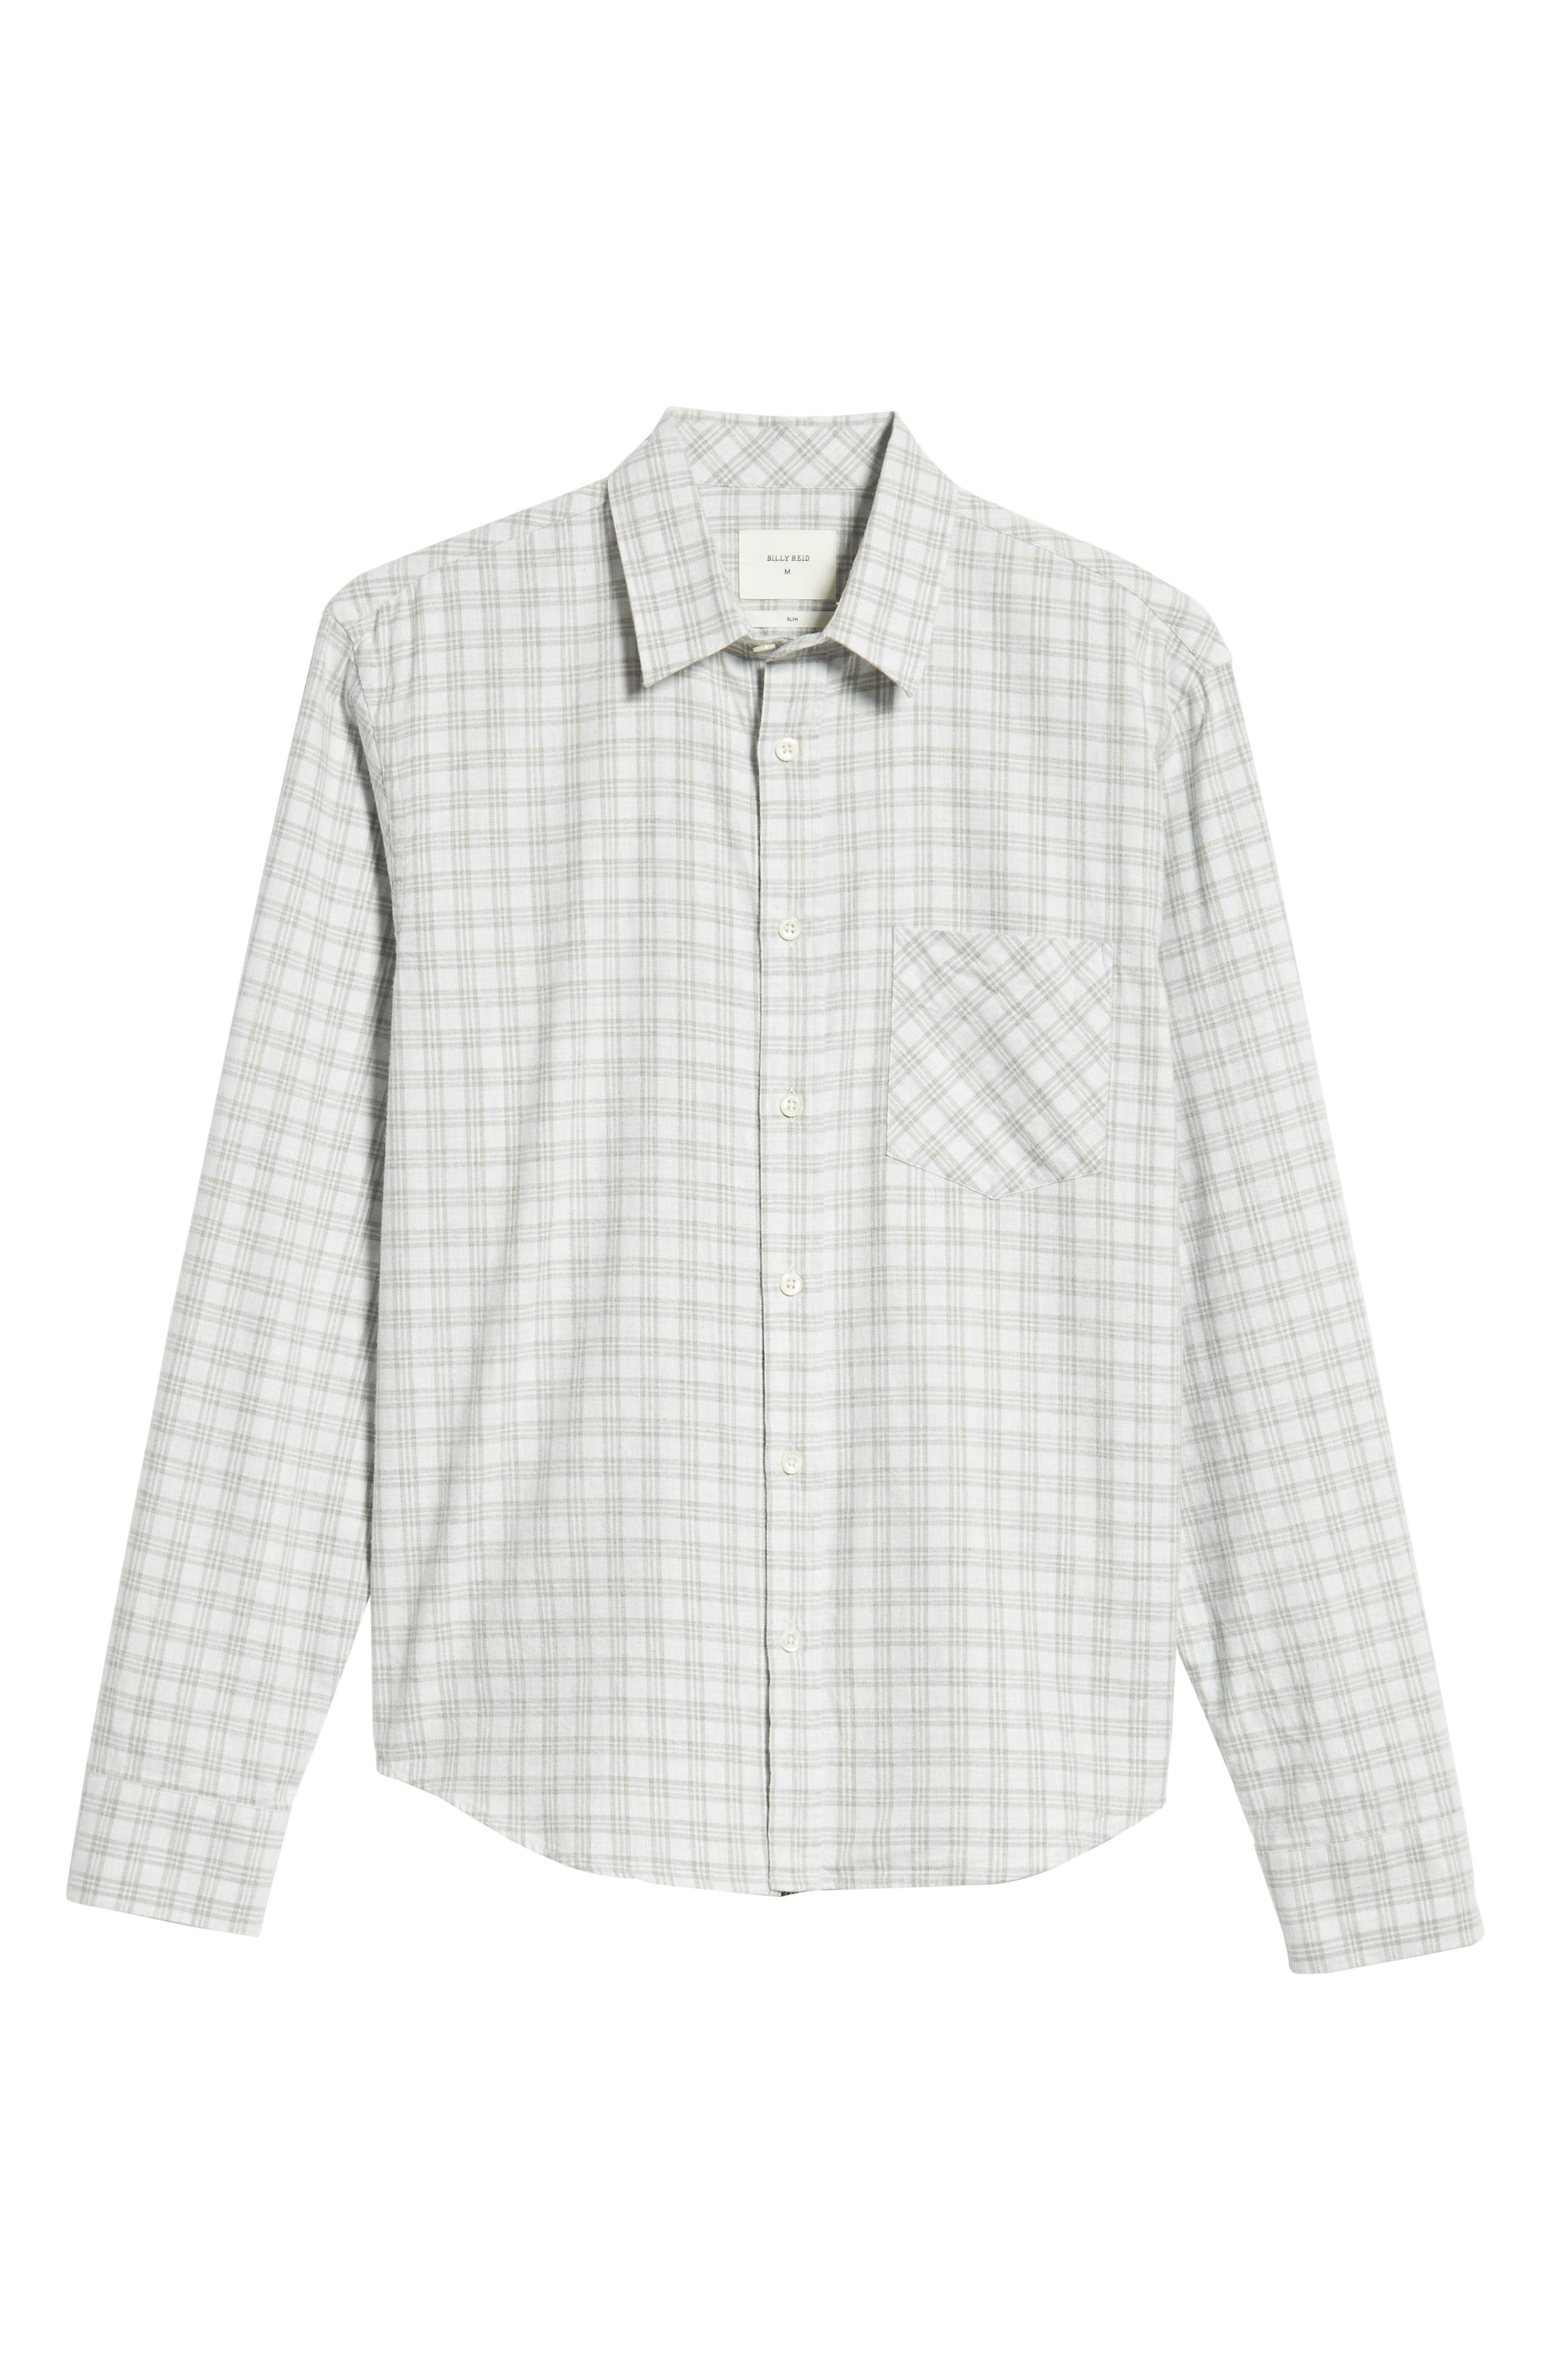 Kirby Slim Fit Check Sport Shirt,                             Alternate thumbnail 5, color,                             LIGHT GREY/ NATURAL